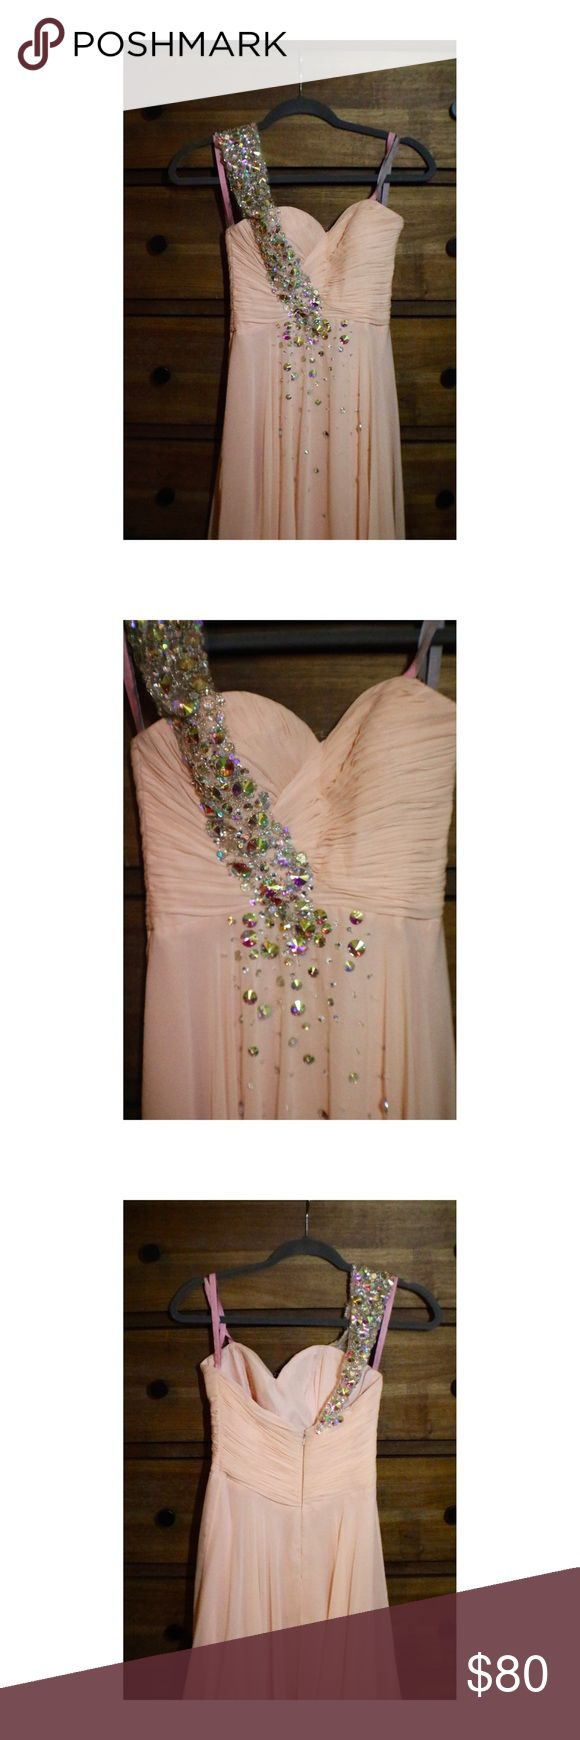 Blush Prom Dress size 0 Waist is 24 inches around, length from shoulder to floor is 55 inches. Only worn once to prom. Has three layers (seen in 2nd to last photo) Blush Dresses Prom